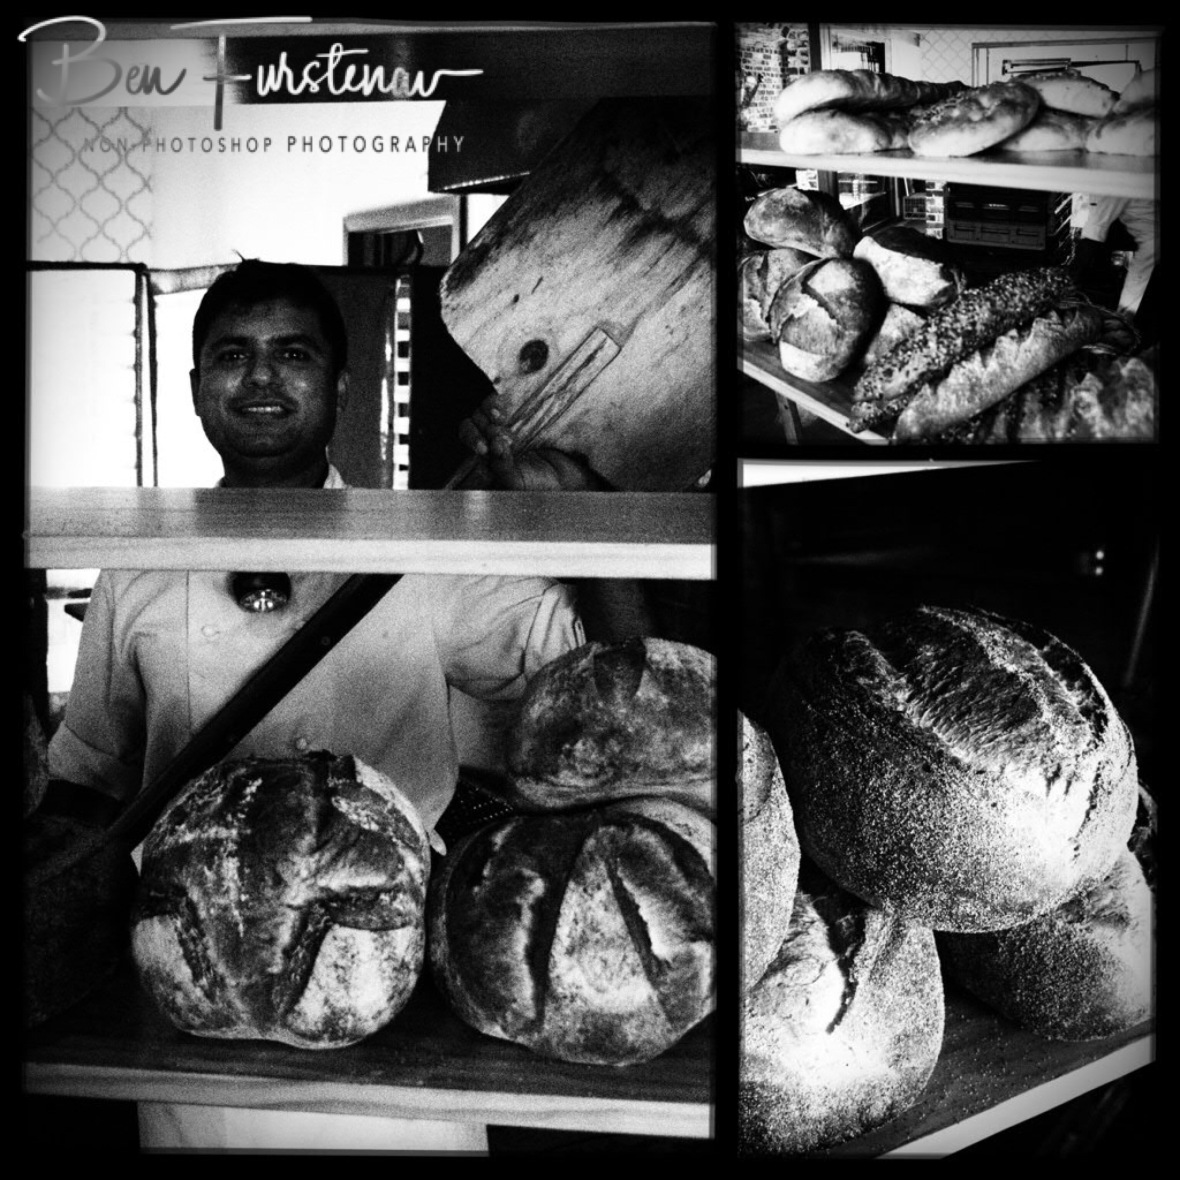 Shailesh with his magic tool to create a fine selection of sourdough bread, Newrybar, New South Wales, Australia